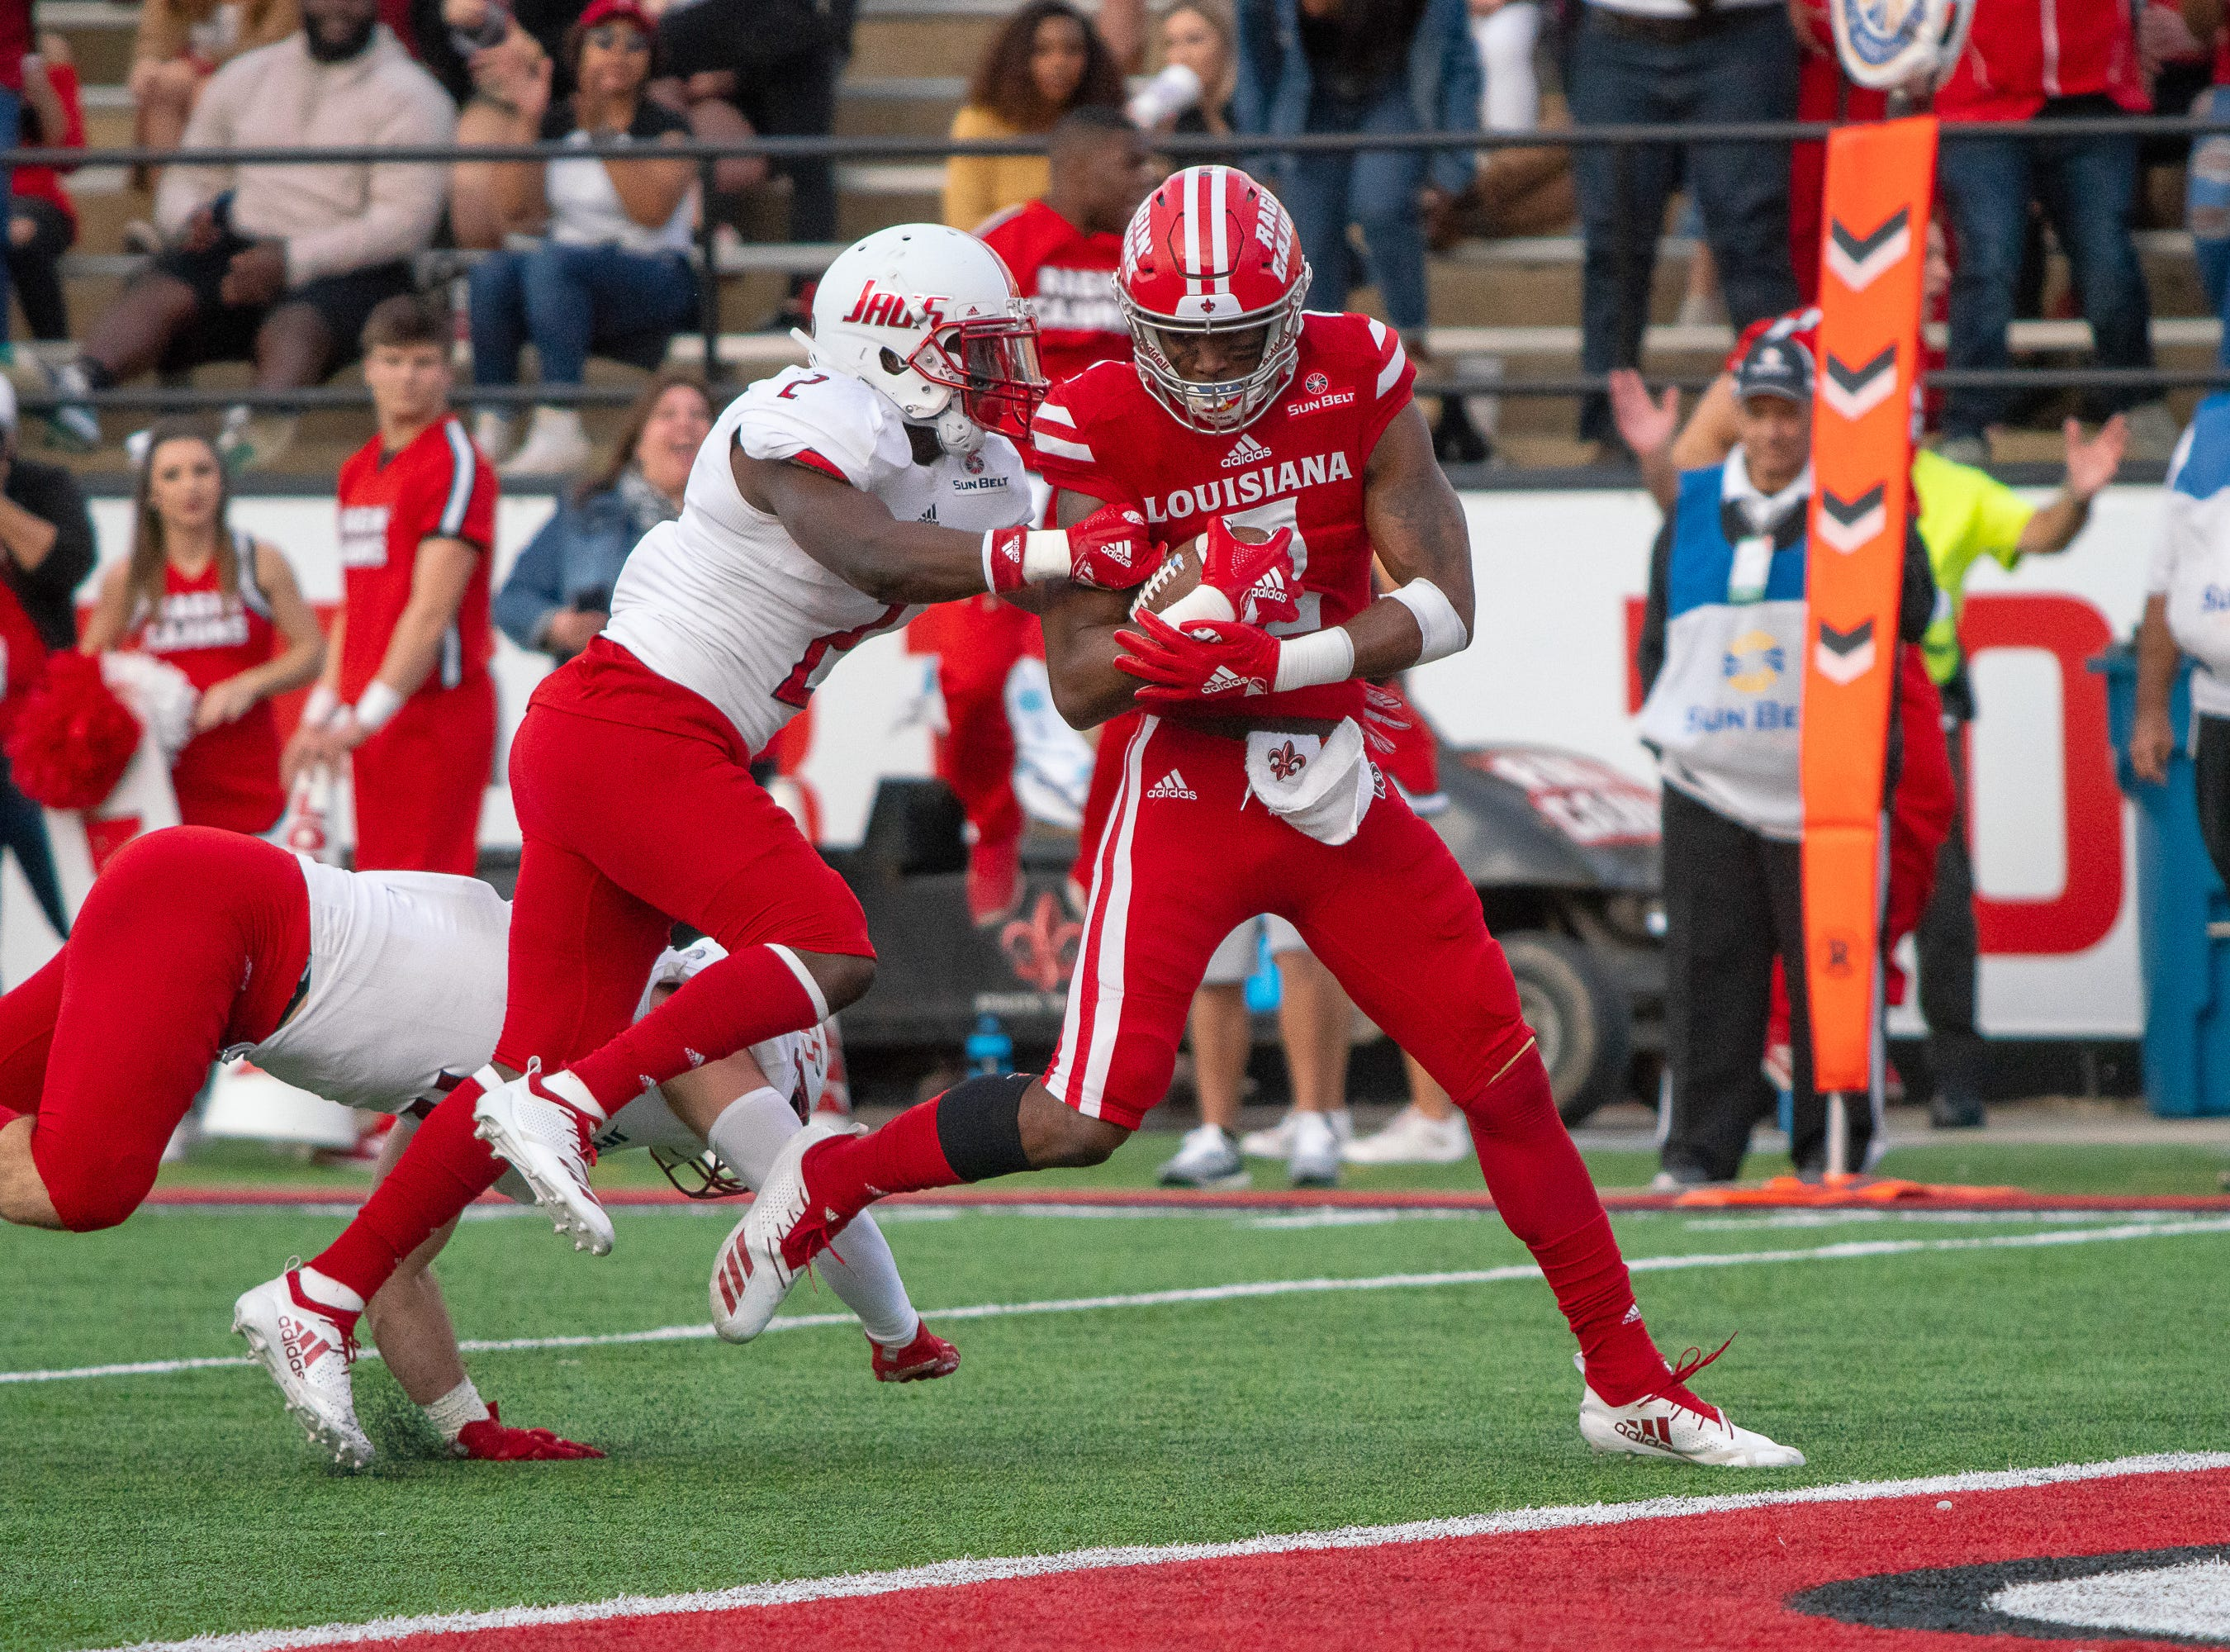 UL's Ja'Marcus Bradley runs the ball into the endzone to score a touchdown as the Ragin' Cajuns play against the South Alabama Jaguars at Cajun Field on November 17, 2018.